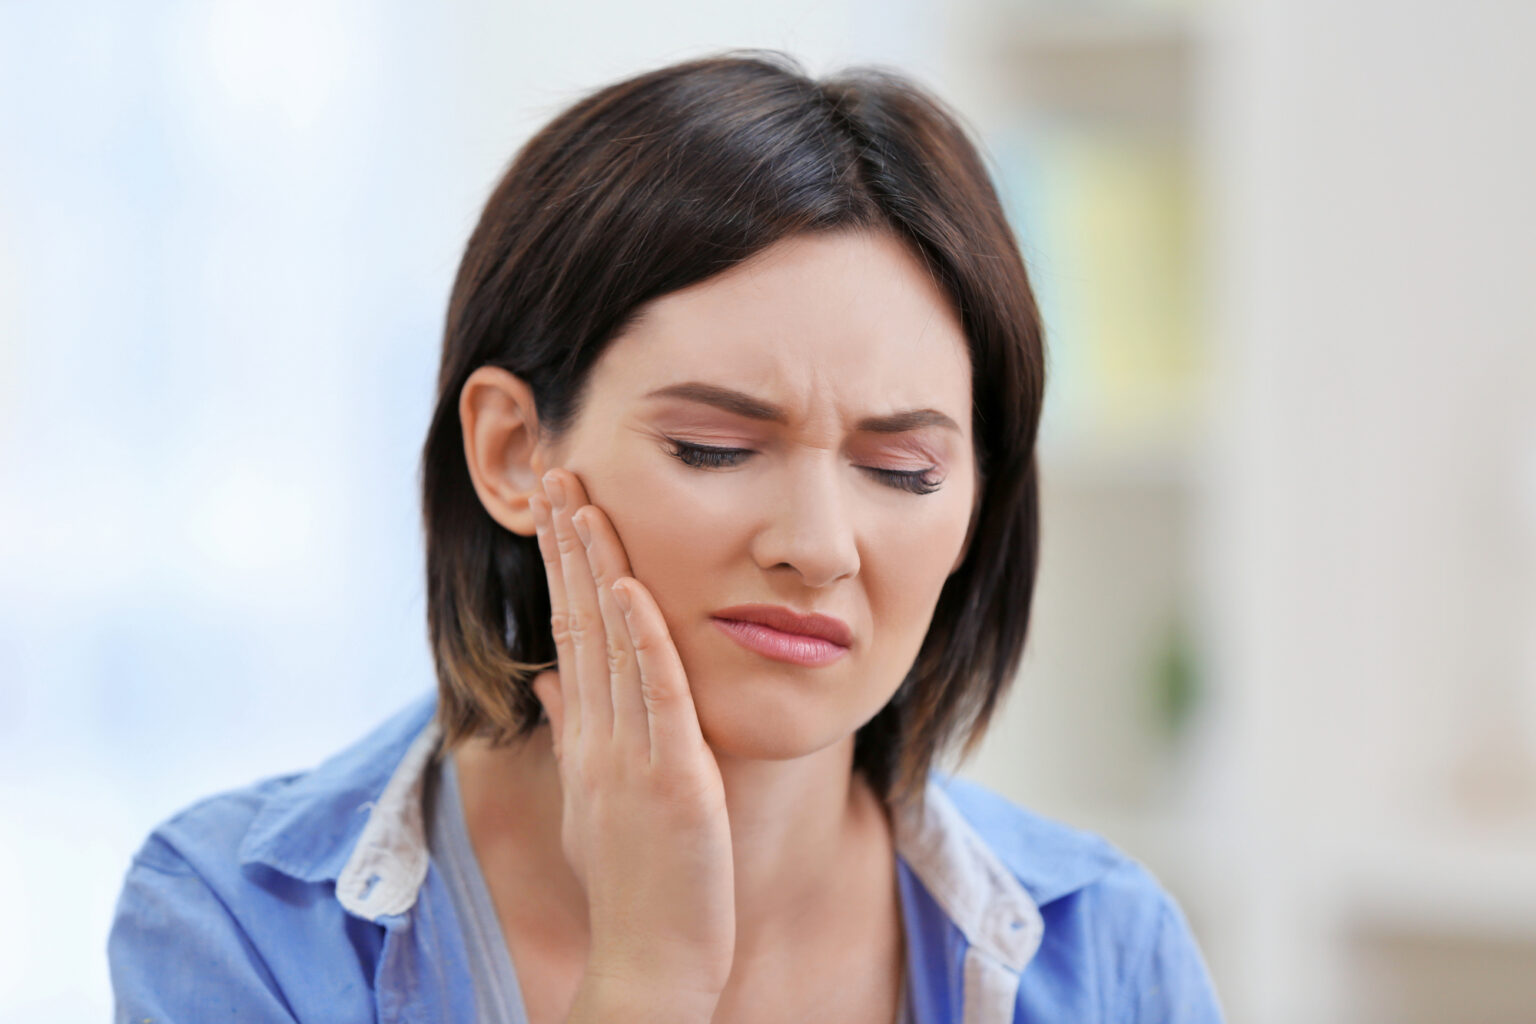 Treatment for Troublesome Teeth Grinding